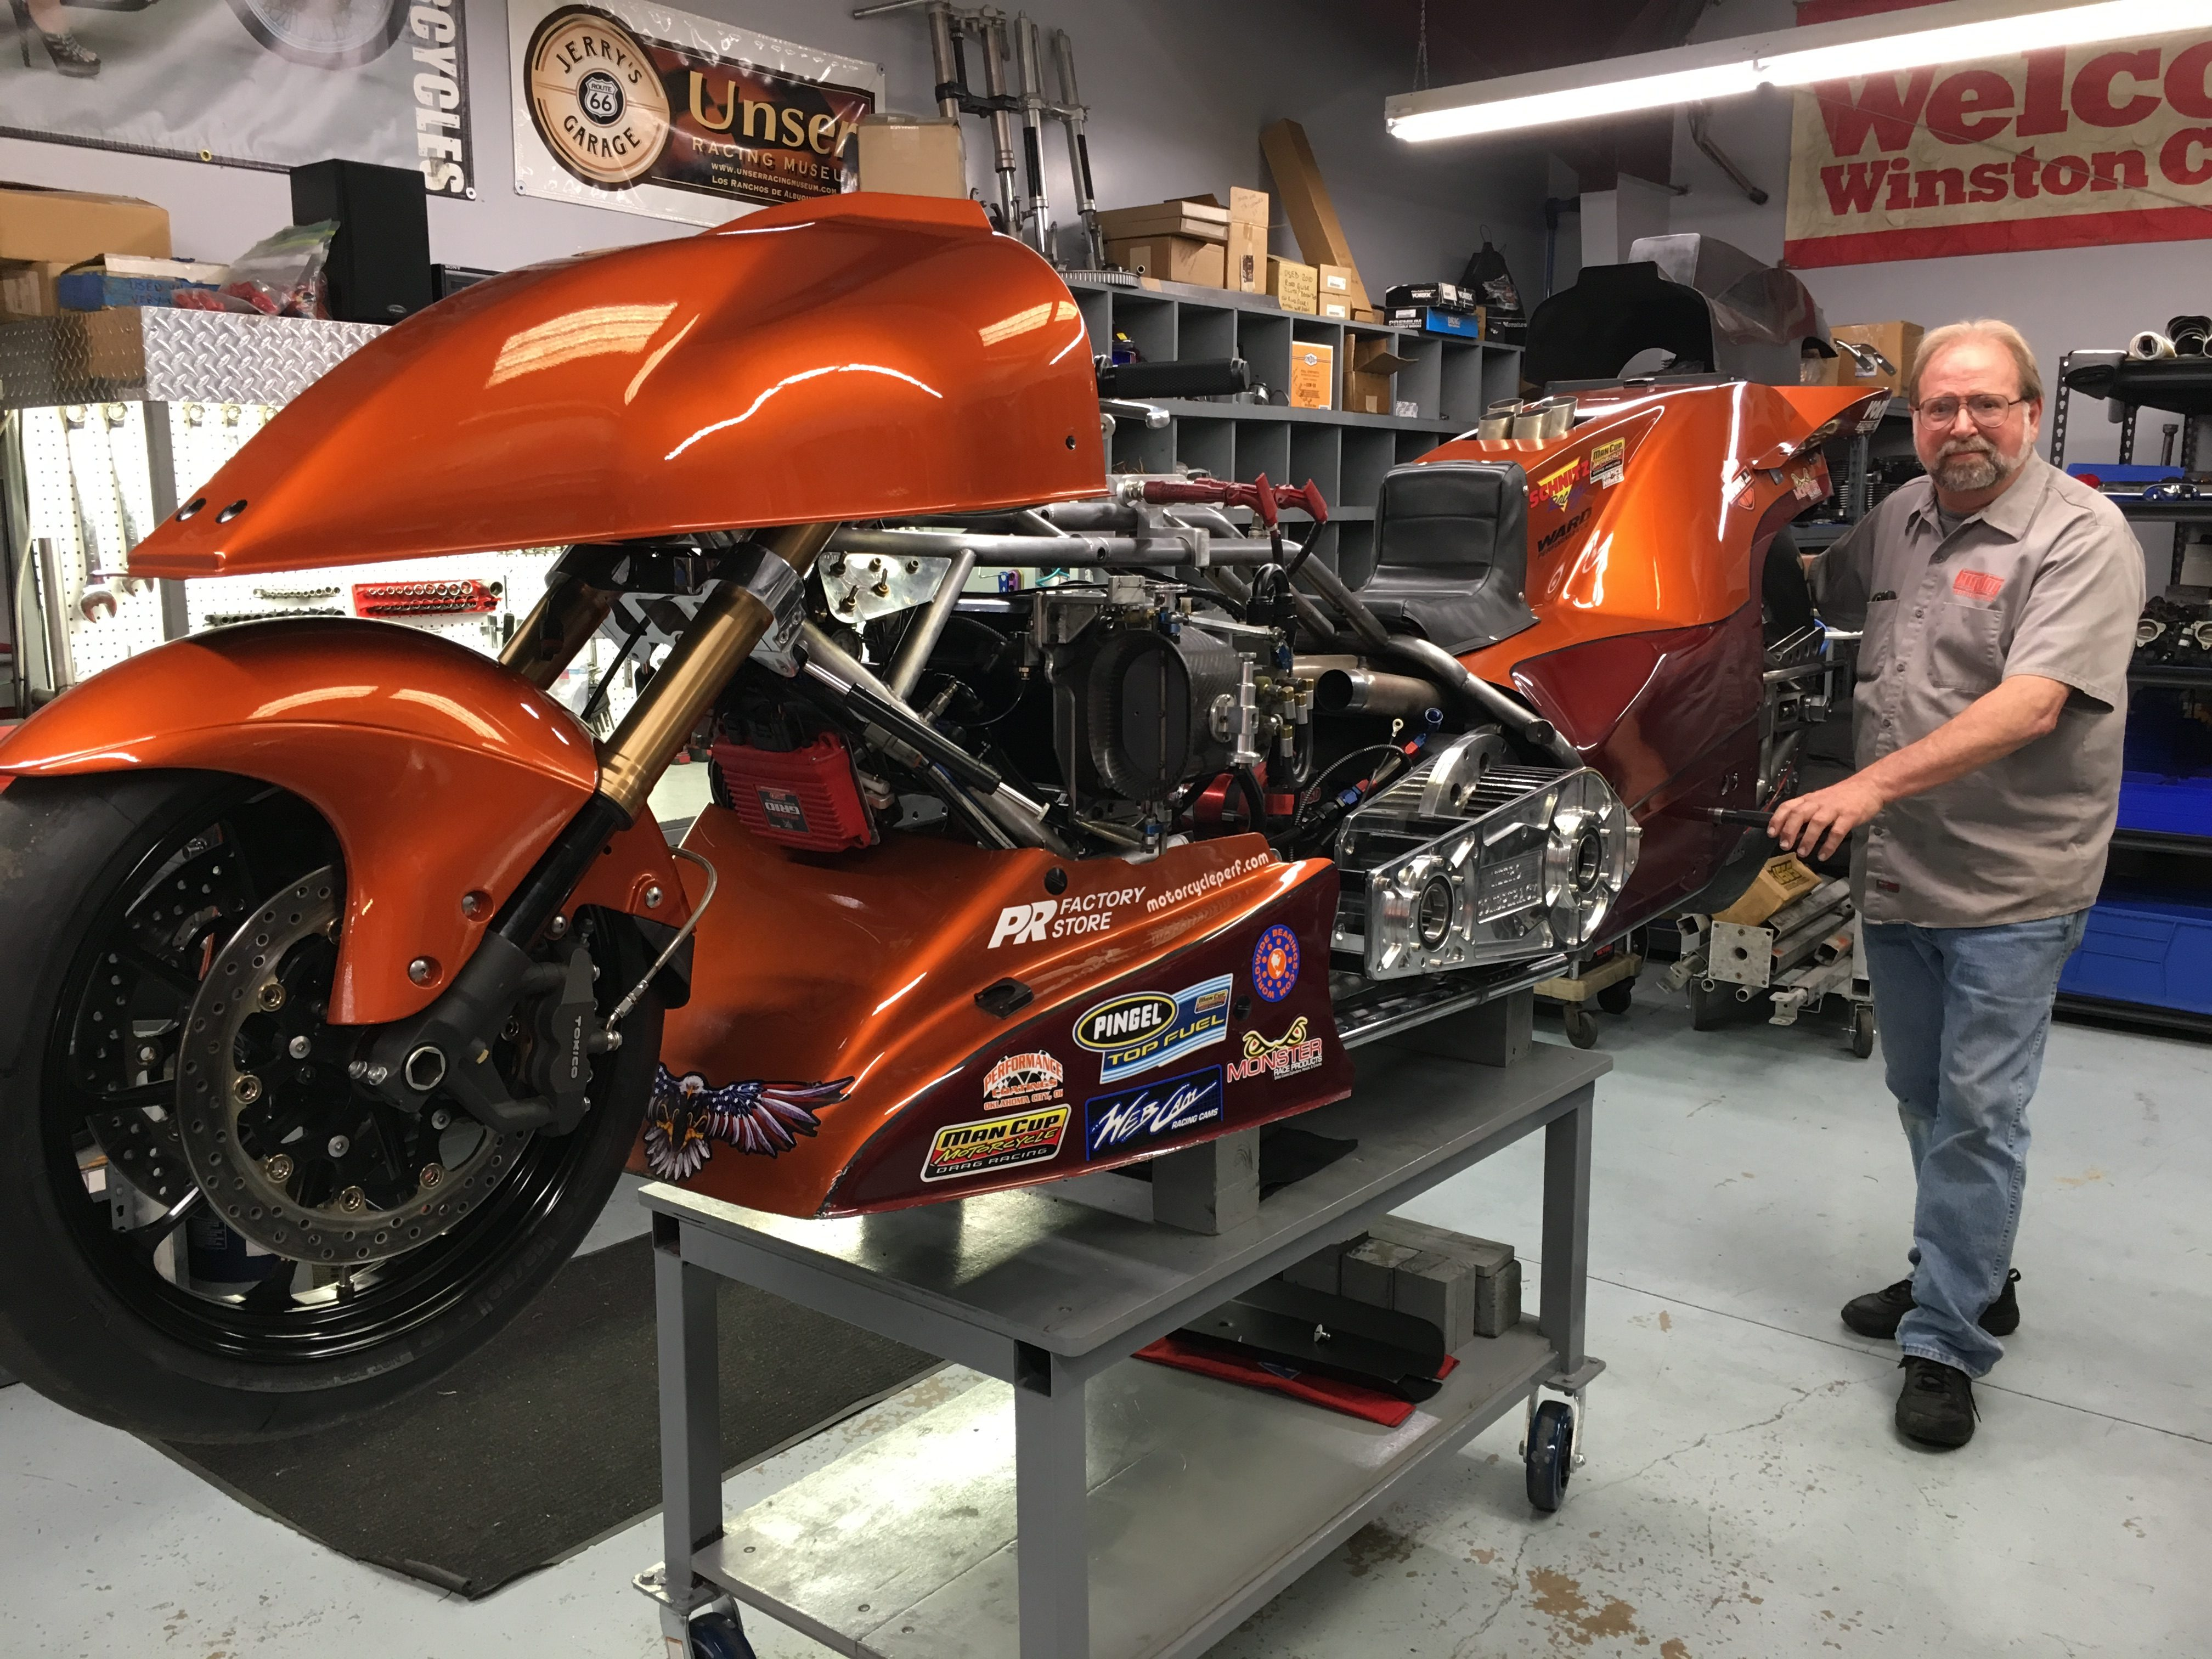 Sam Wills Top Fuel Motorcycle